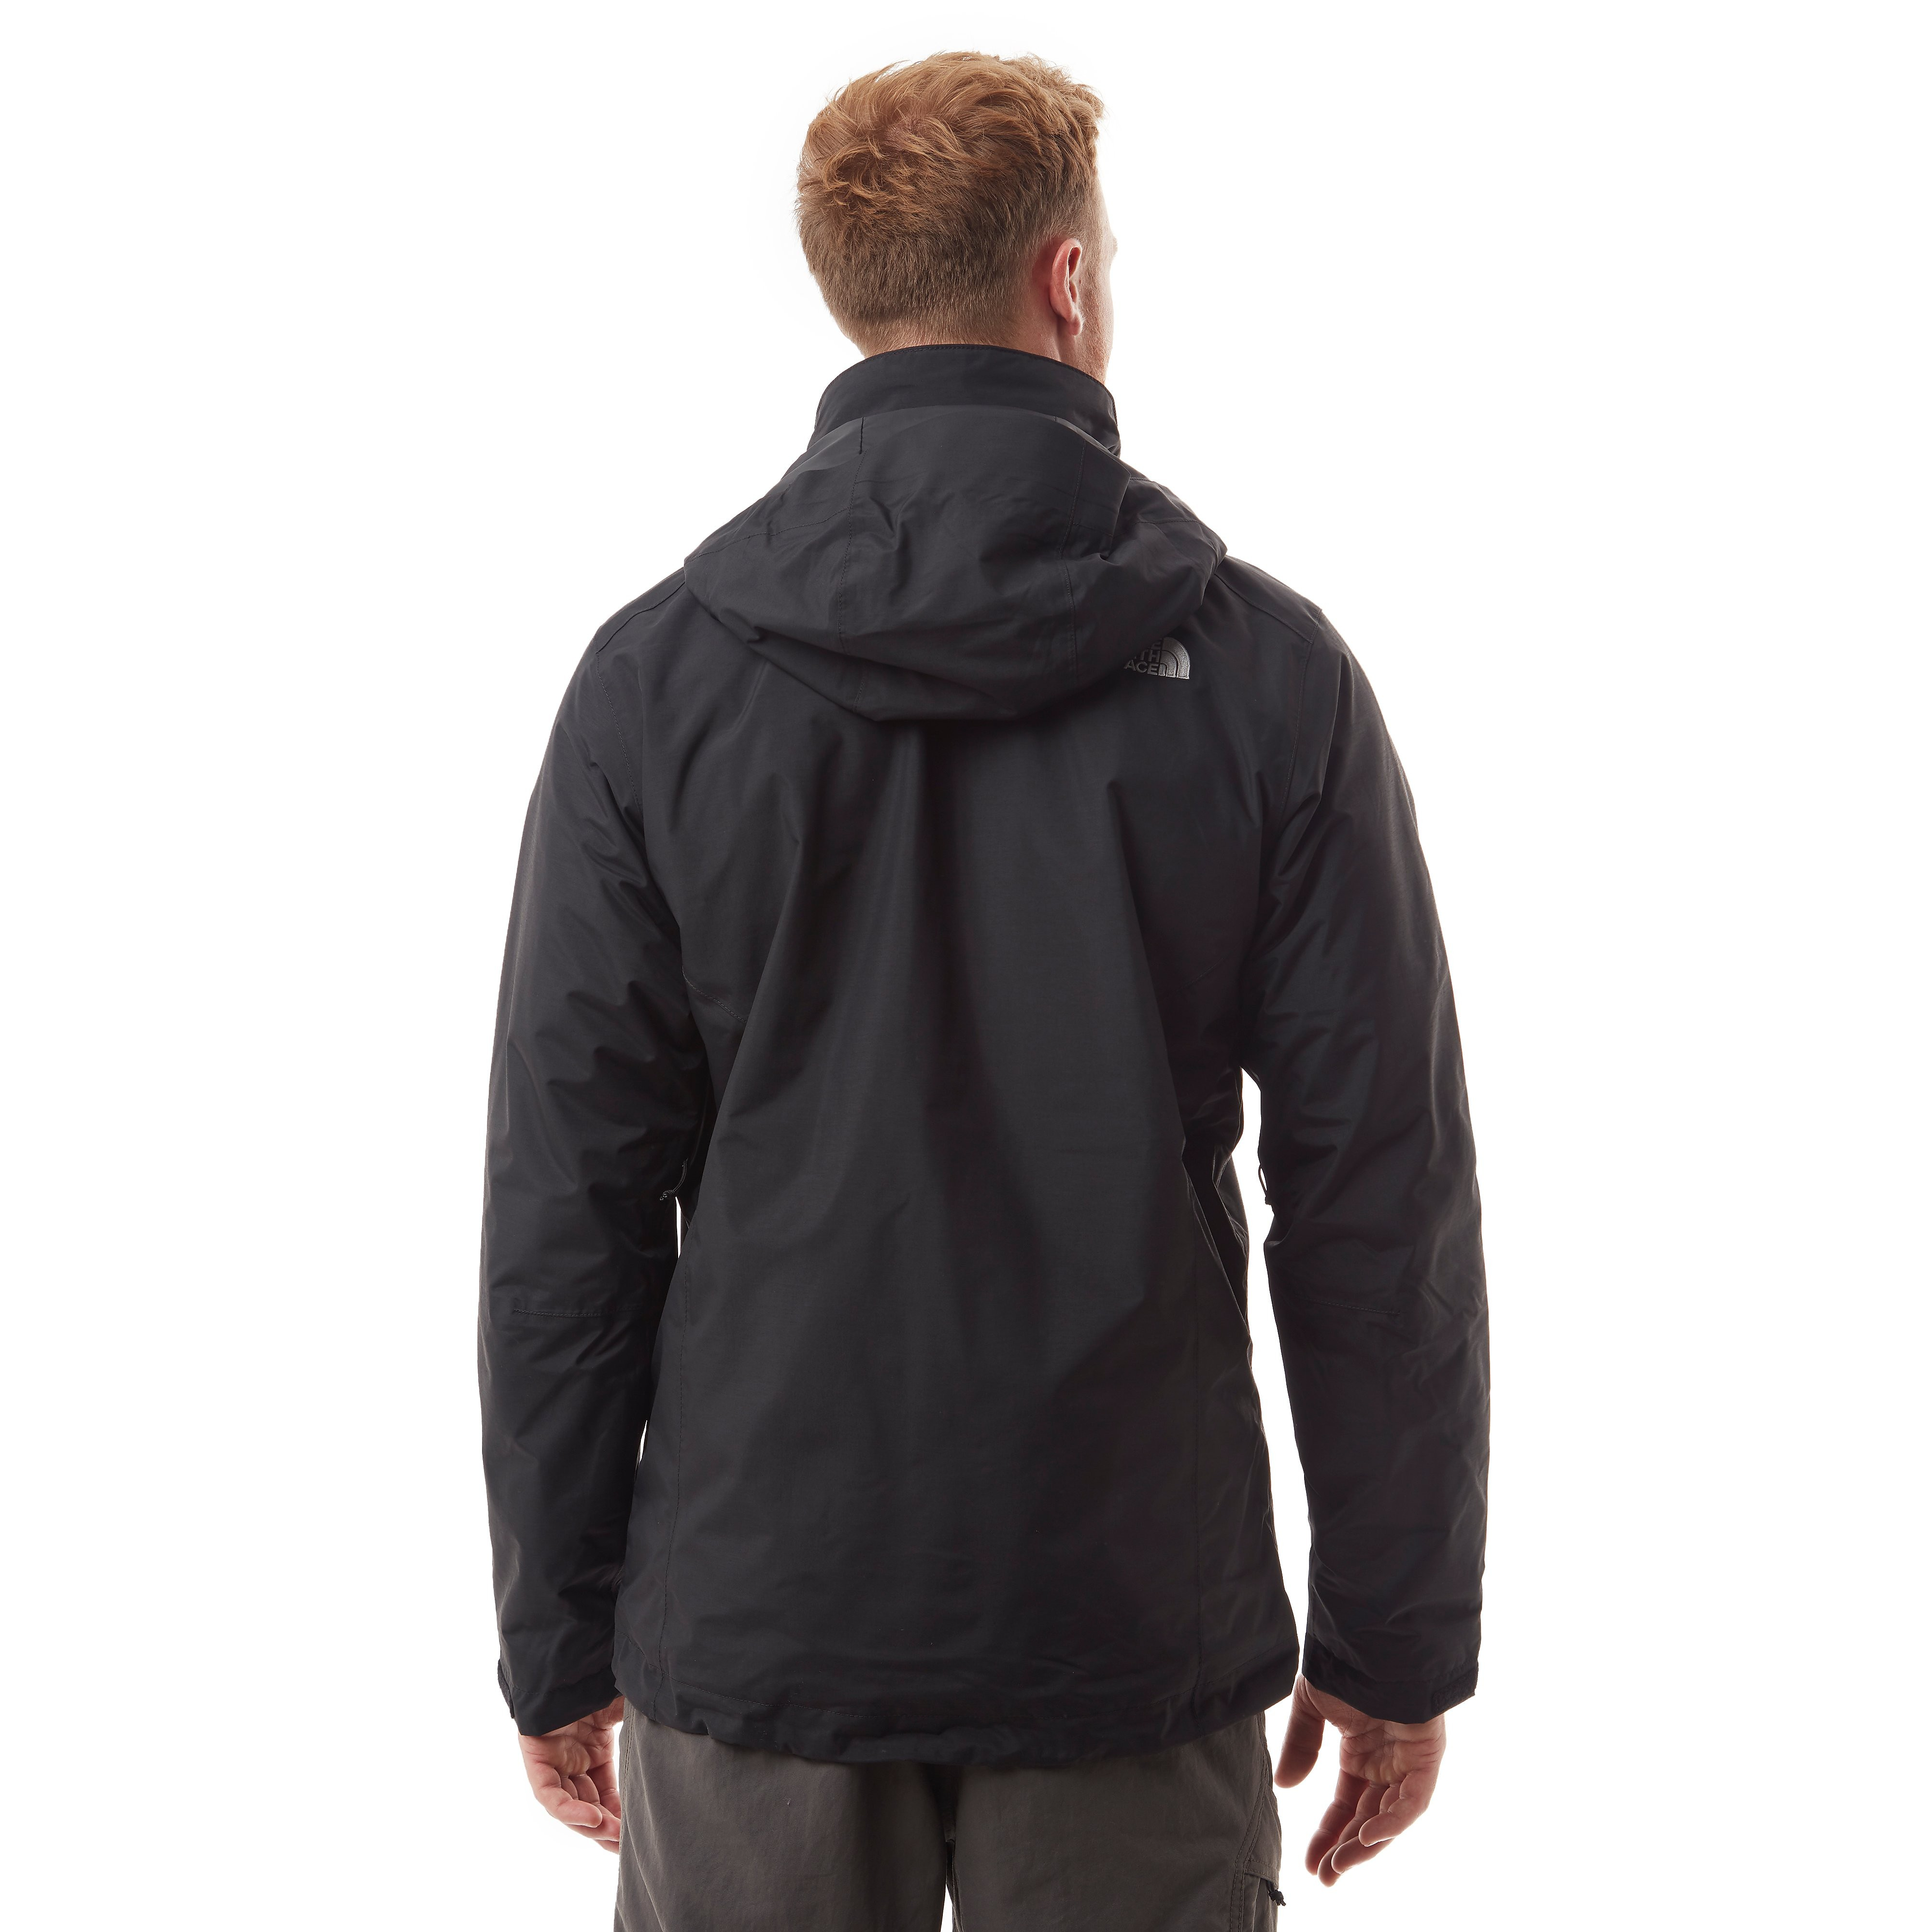 The North Face Evolution II TriClimate Men's 3 in 1 Jacket